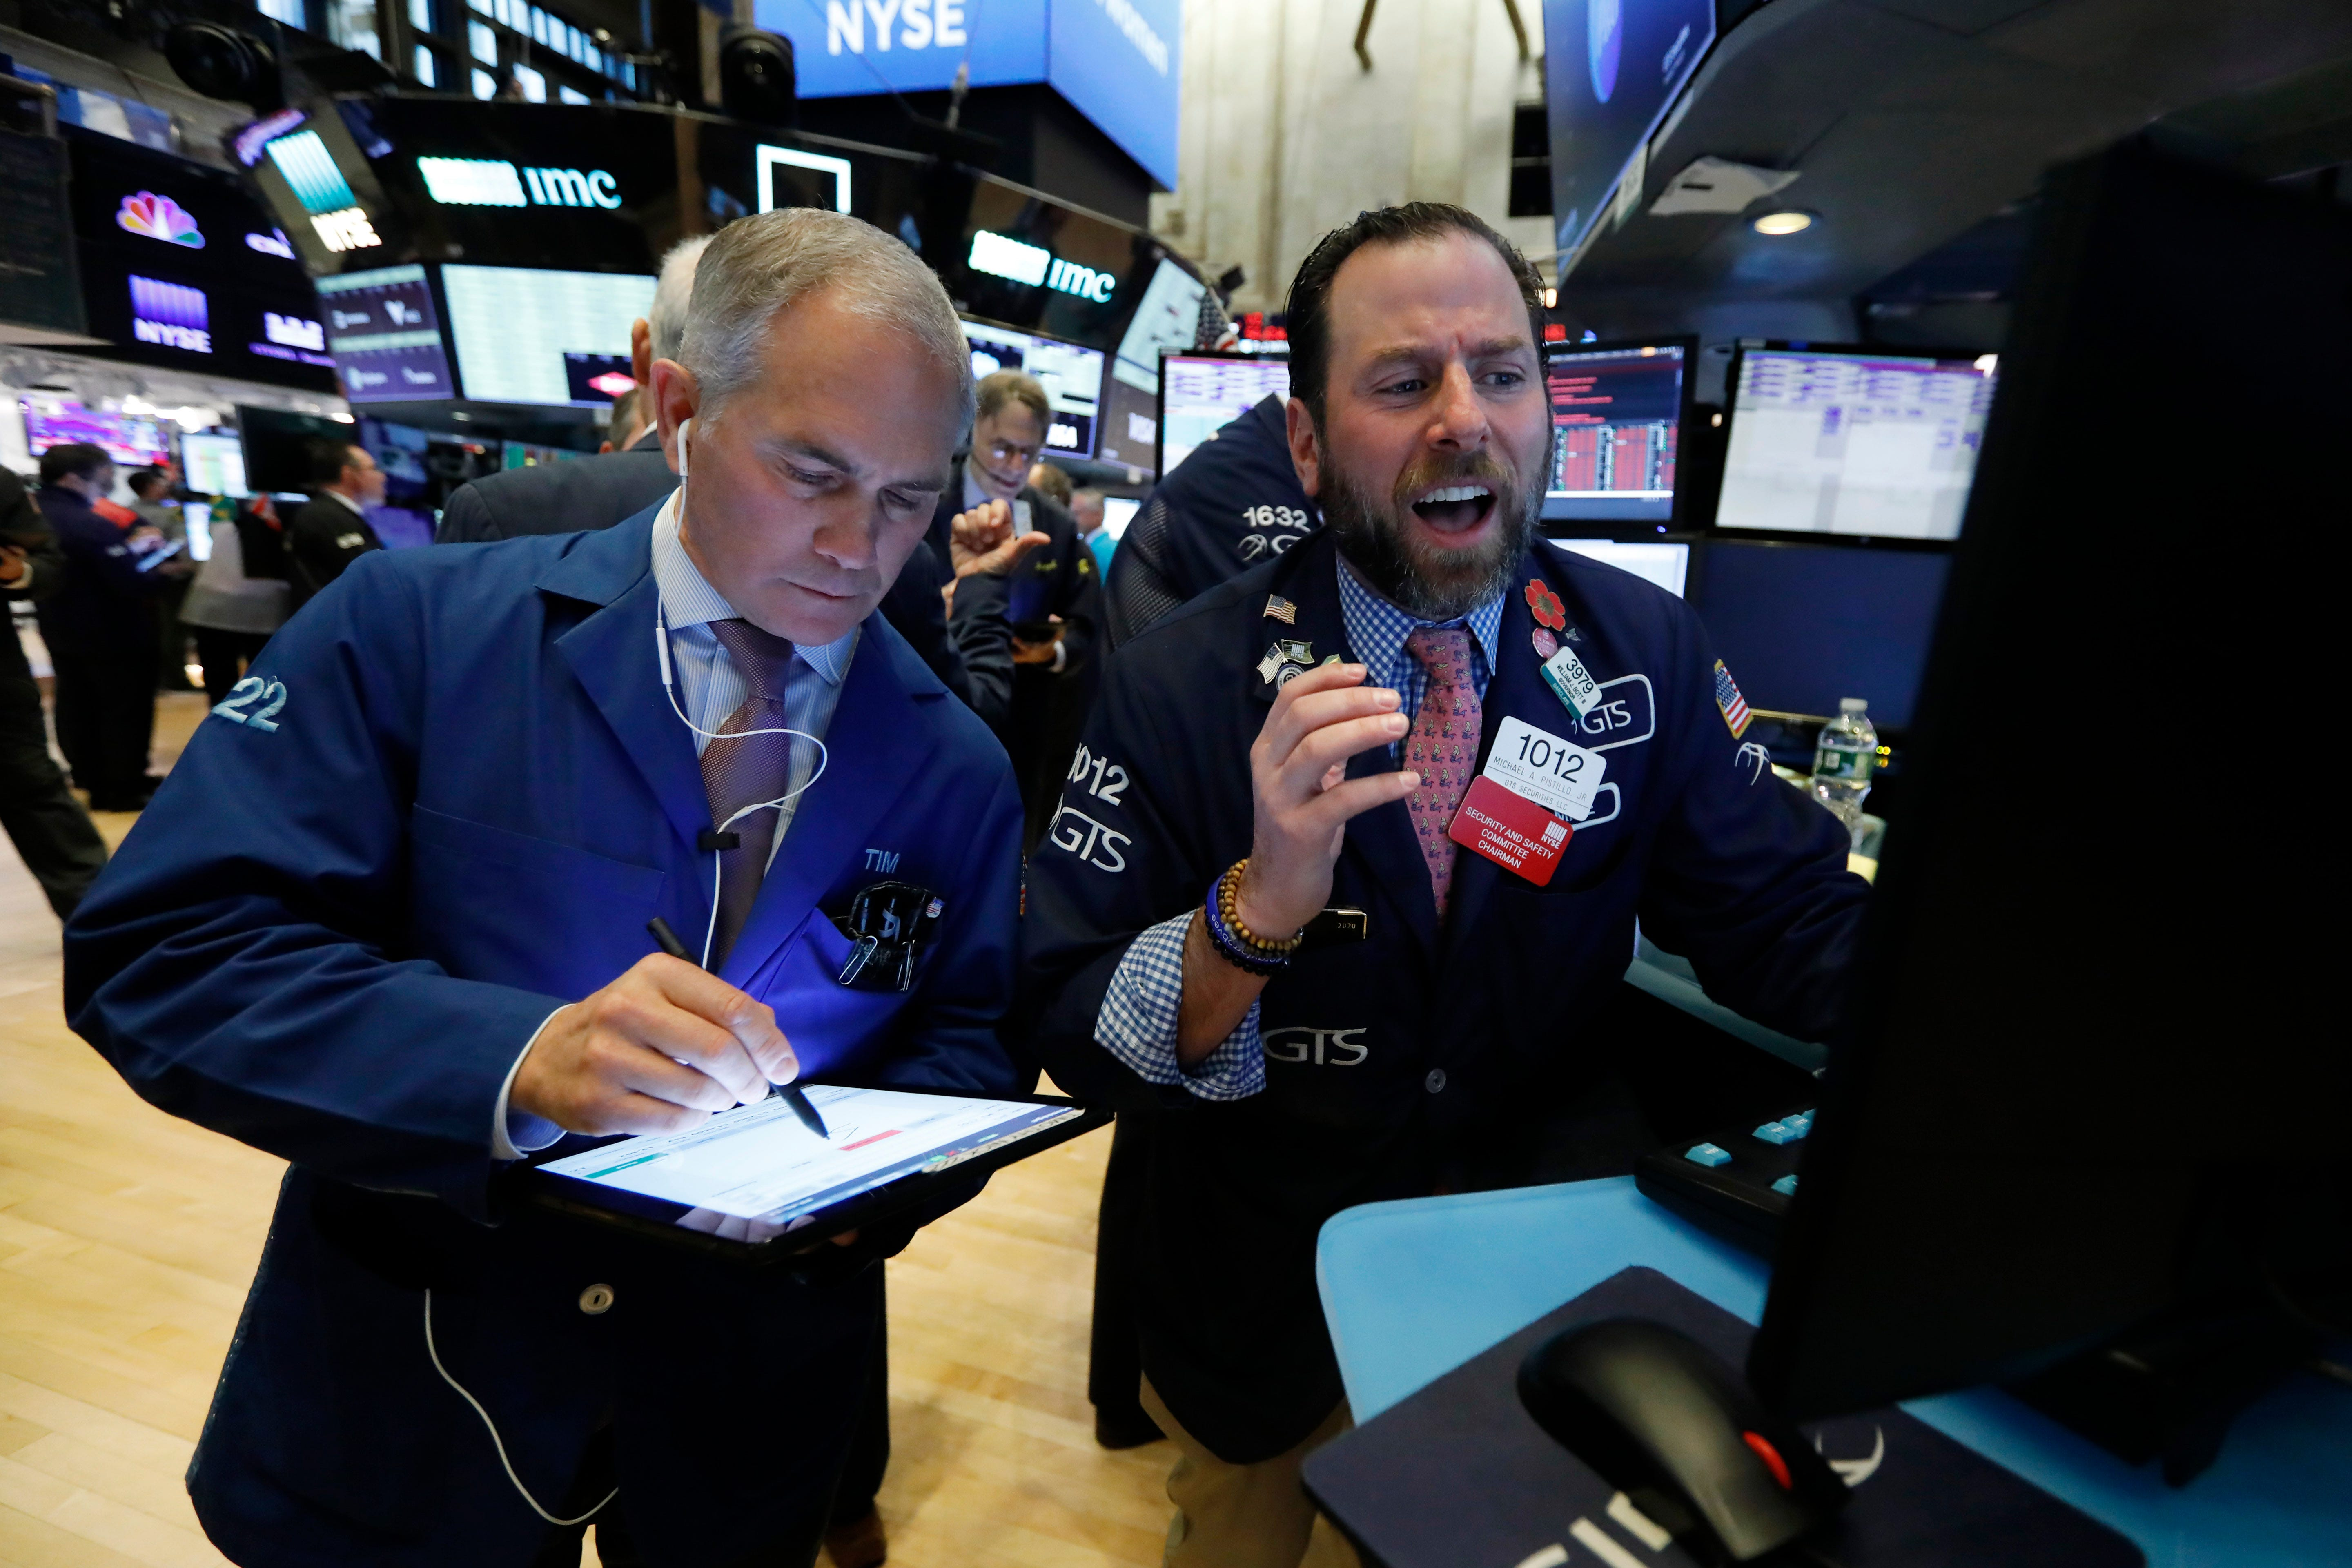 Stocks rise as Federal Reserve provides $2.3 trillion to support economy, capping best week since 1974